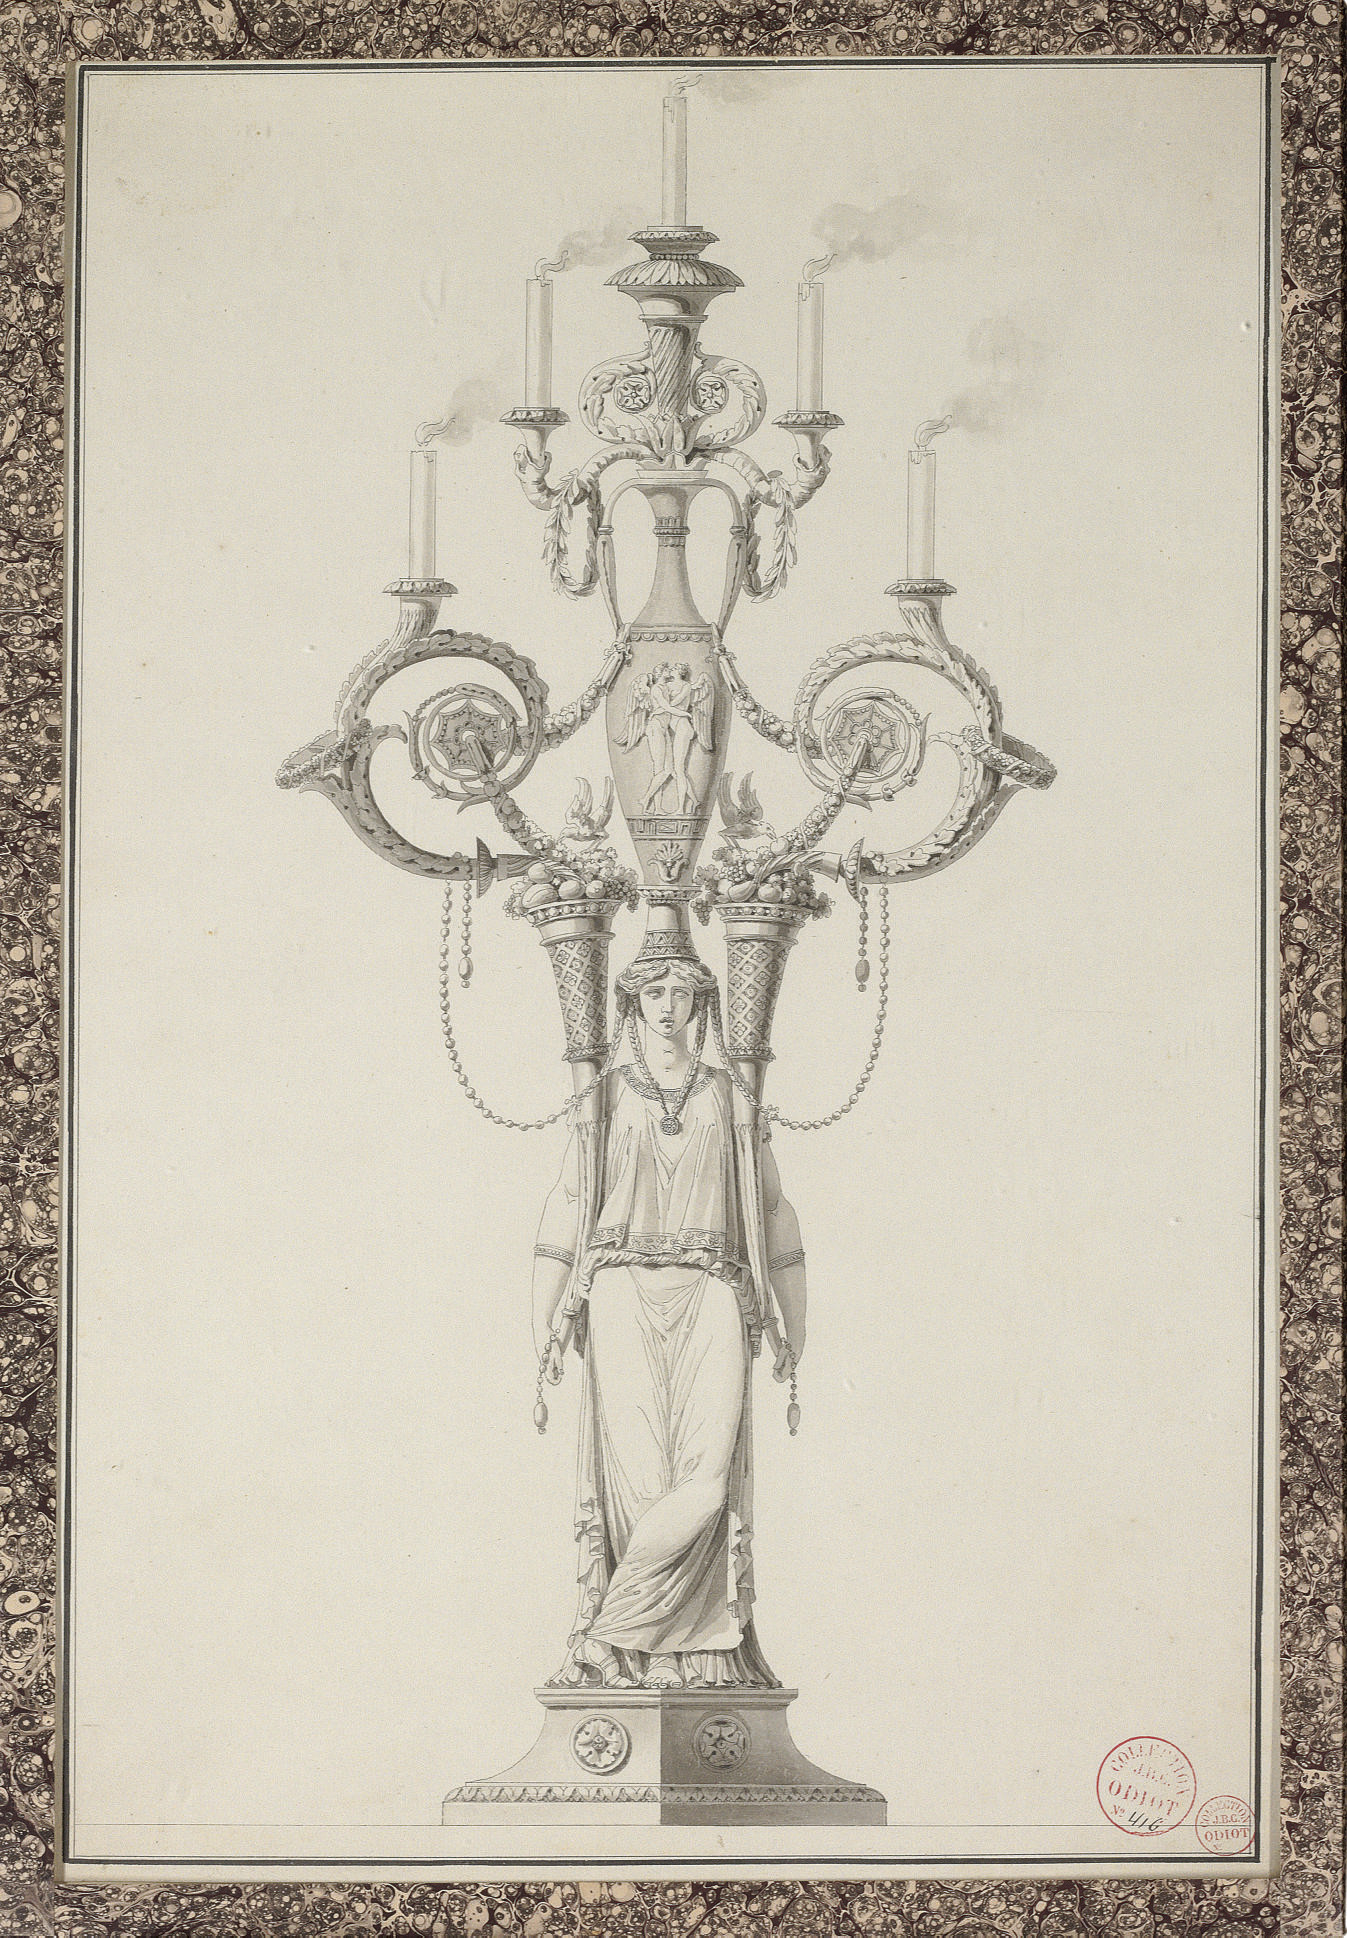 Design for an elaborate candelabrum with a classical figure holding two cornucopia supporting an urn and five lights